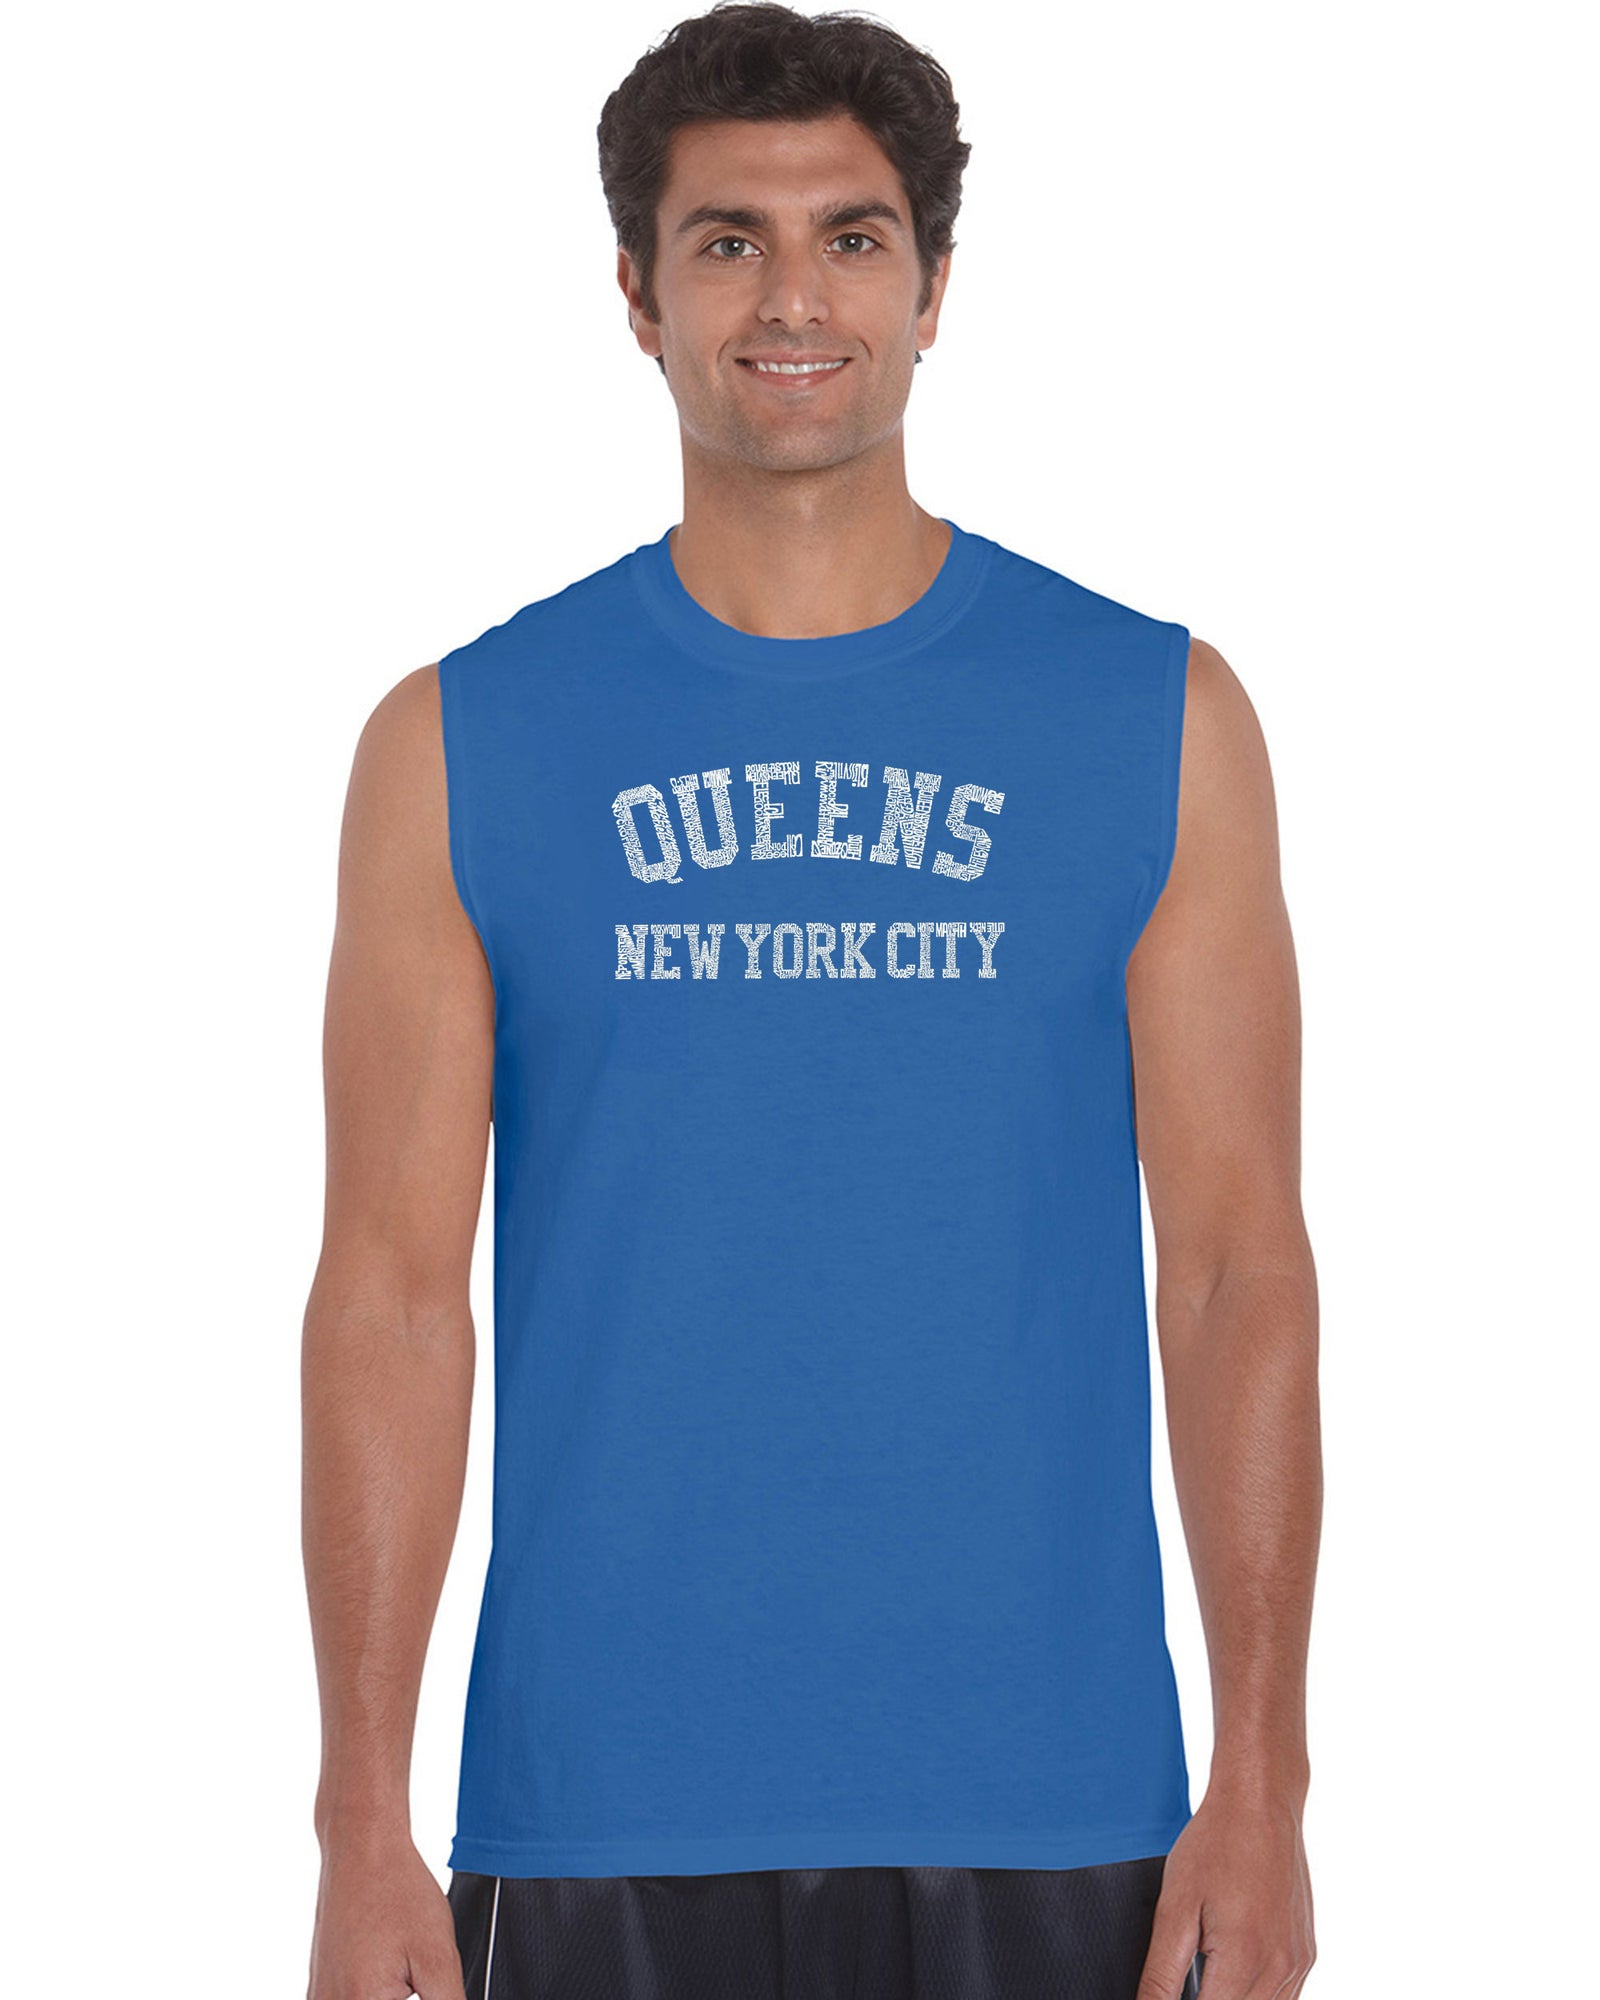 Men's Sleeveless T-shirt - POPULAR NEIGHBORHOODS IN QUEENS, NY